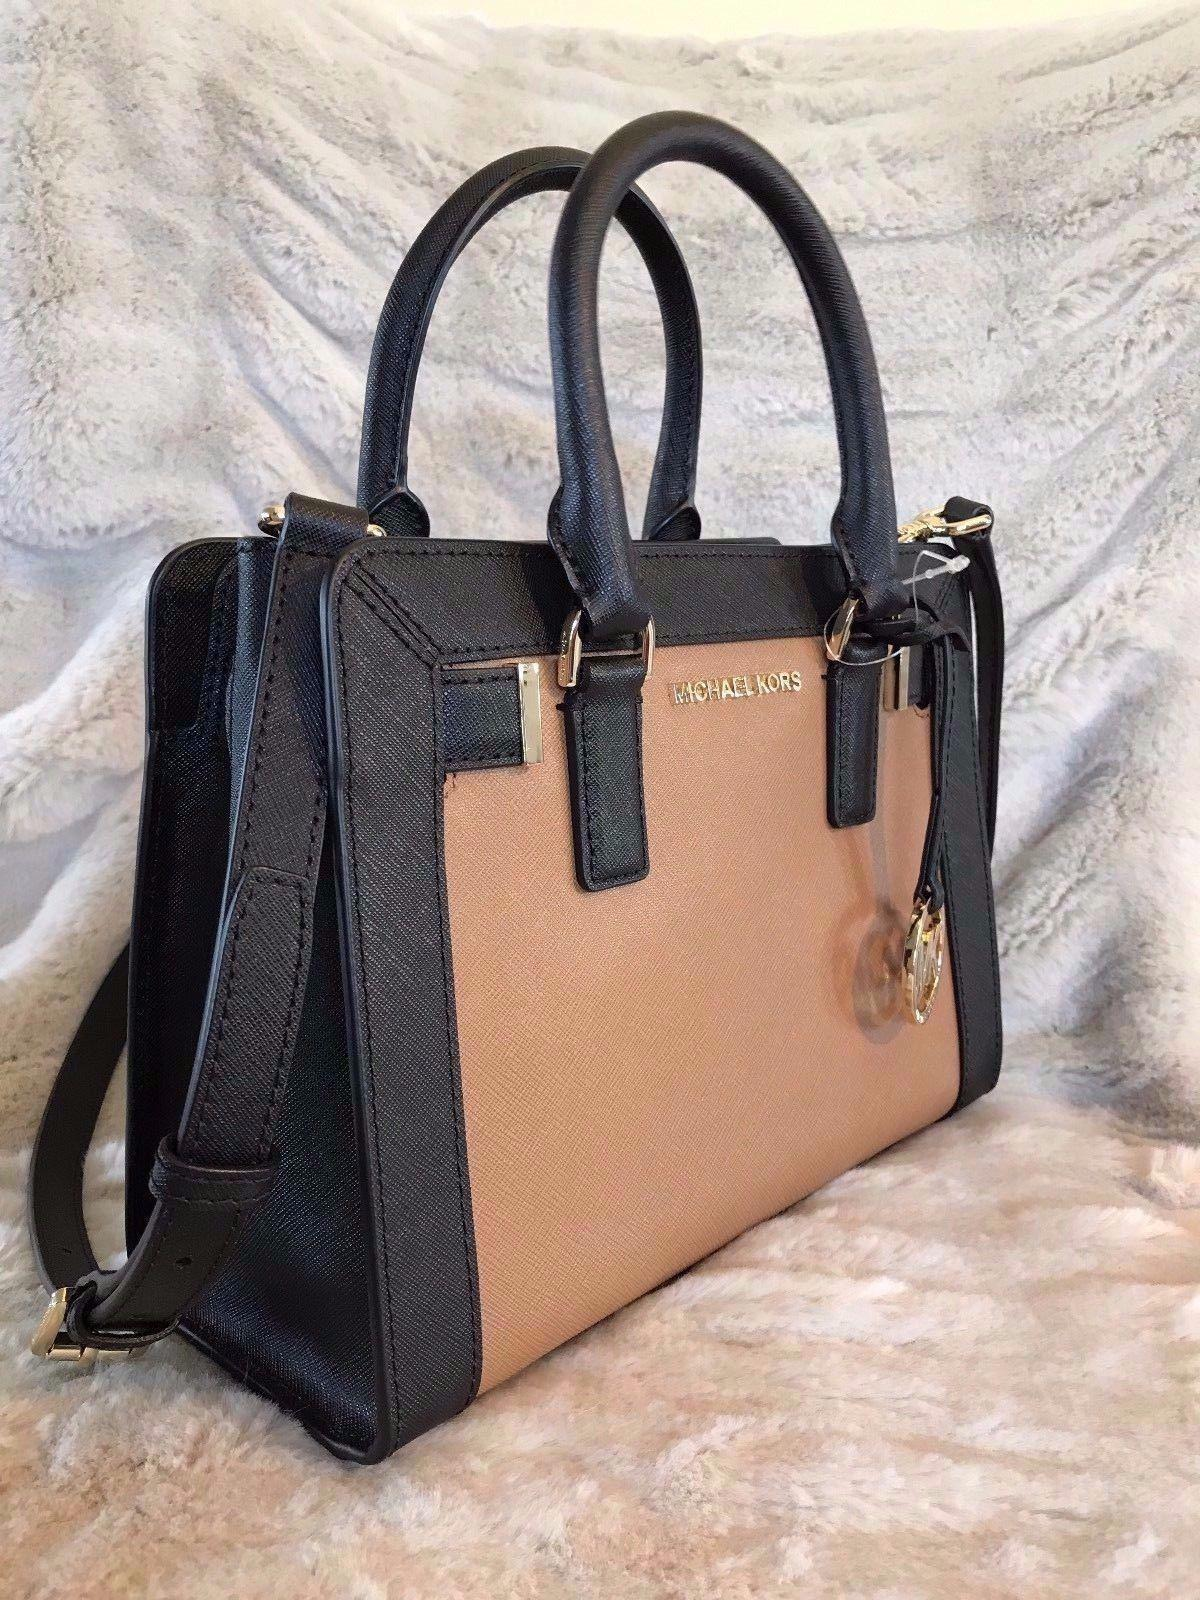 20355cb6d2eb ... sale michael kors dillon small monogram brown crossbody strap satchel  in black acorn. 1234567891011 29367